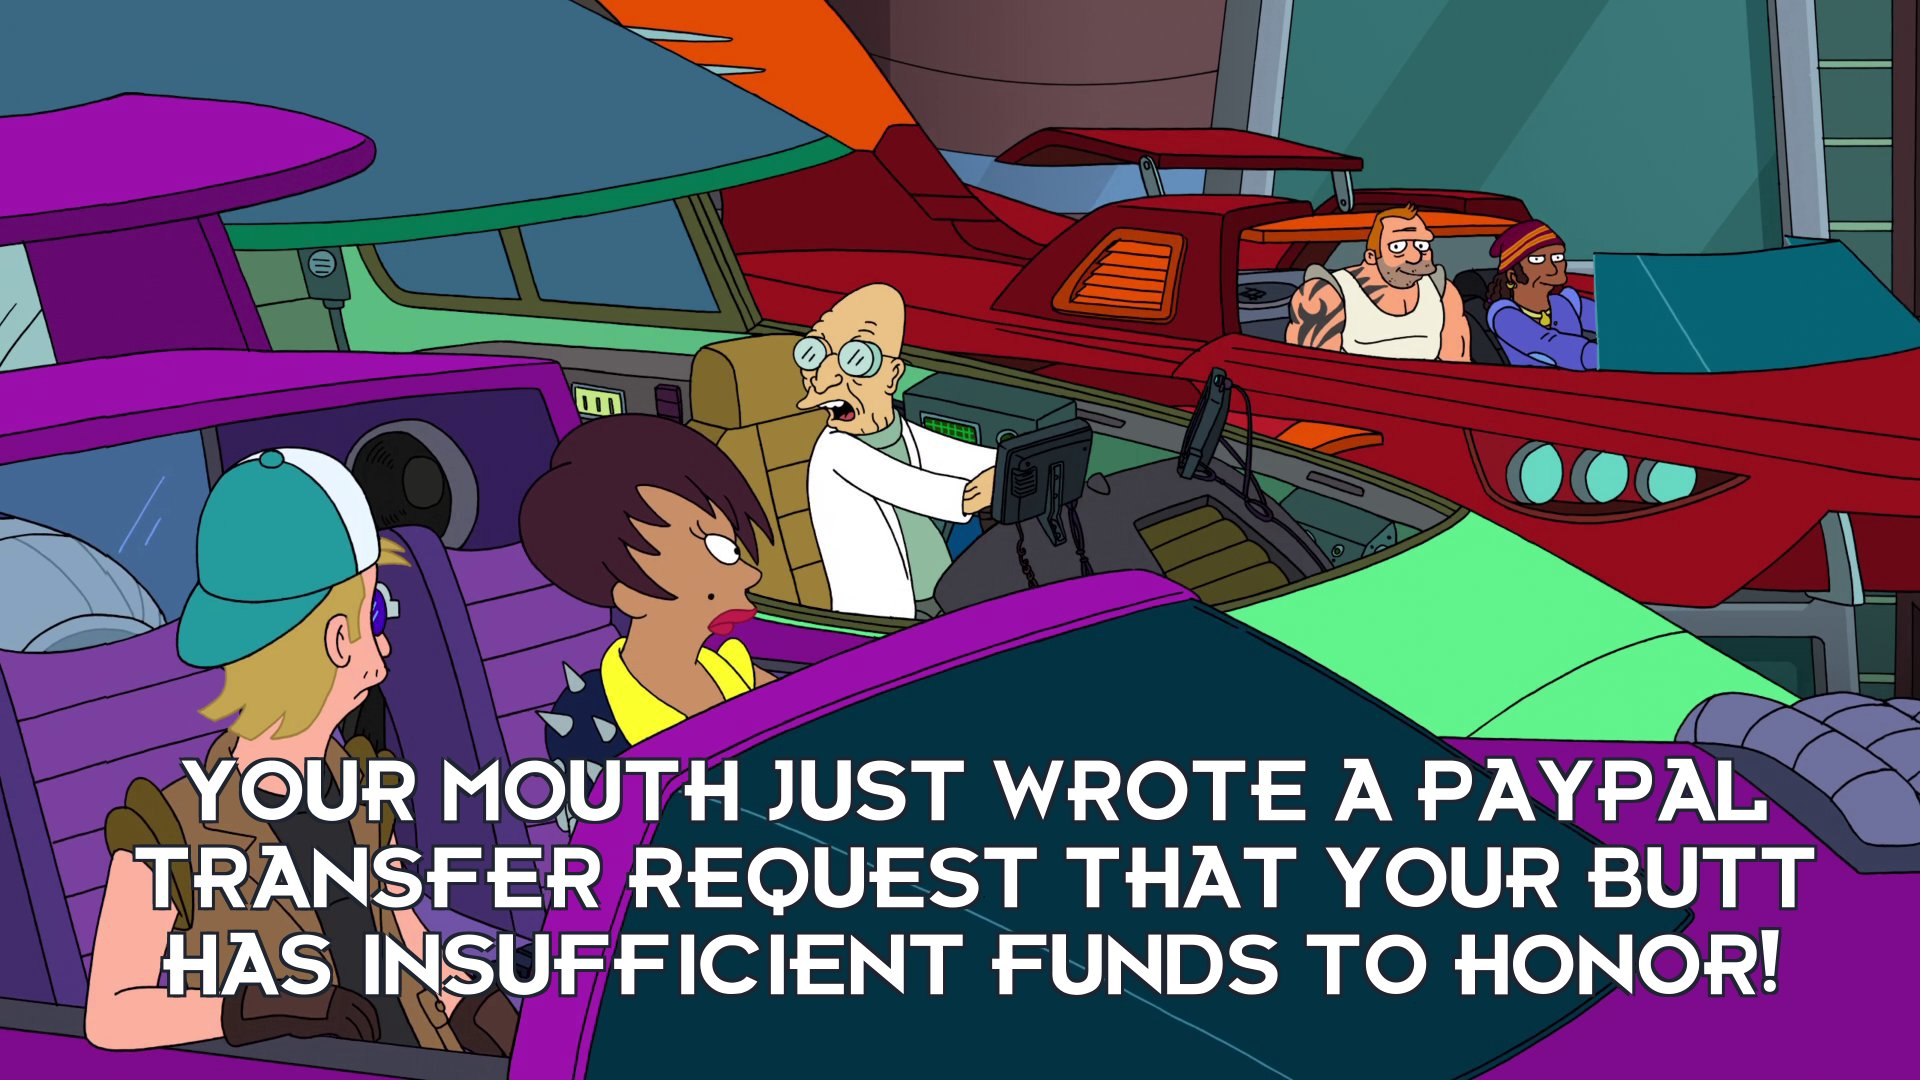 Prof Hubert J Farnsworth: Your mouth just wrote a Paypal transfer request that your butt has insufficient funds to honor!